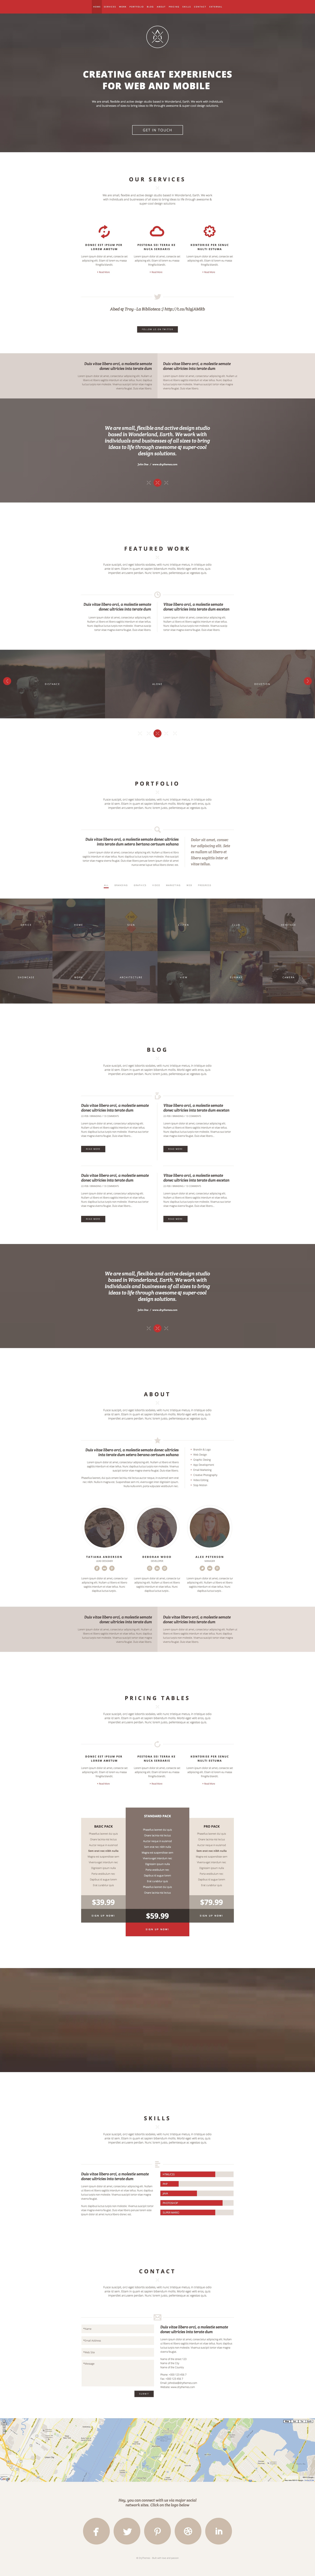 Dry - One Page Responsive Template